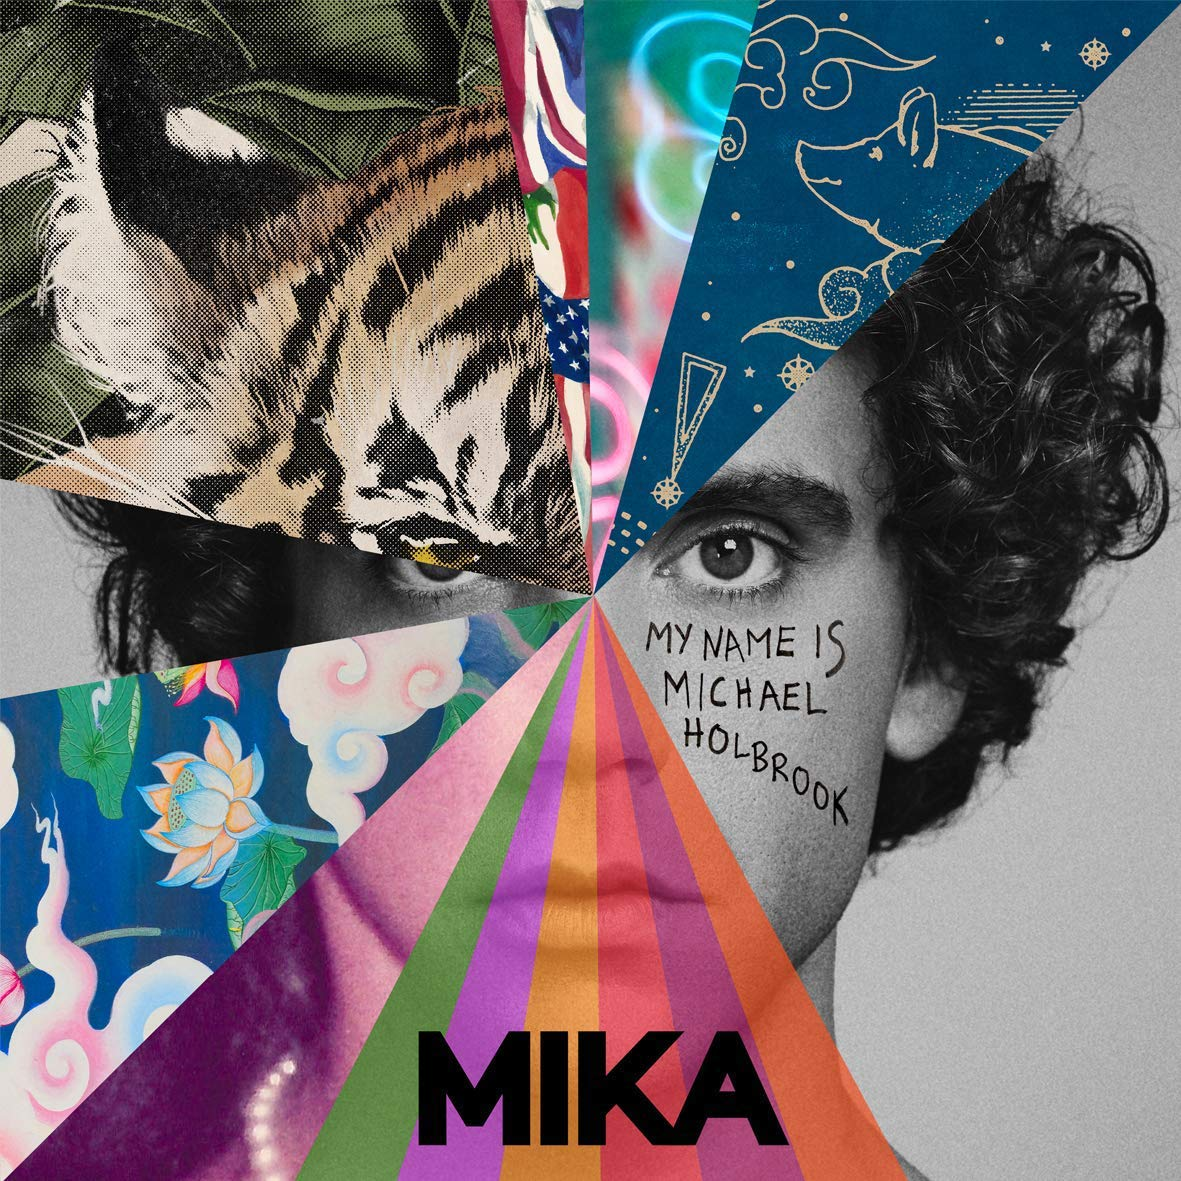 new mika album cover